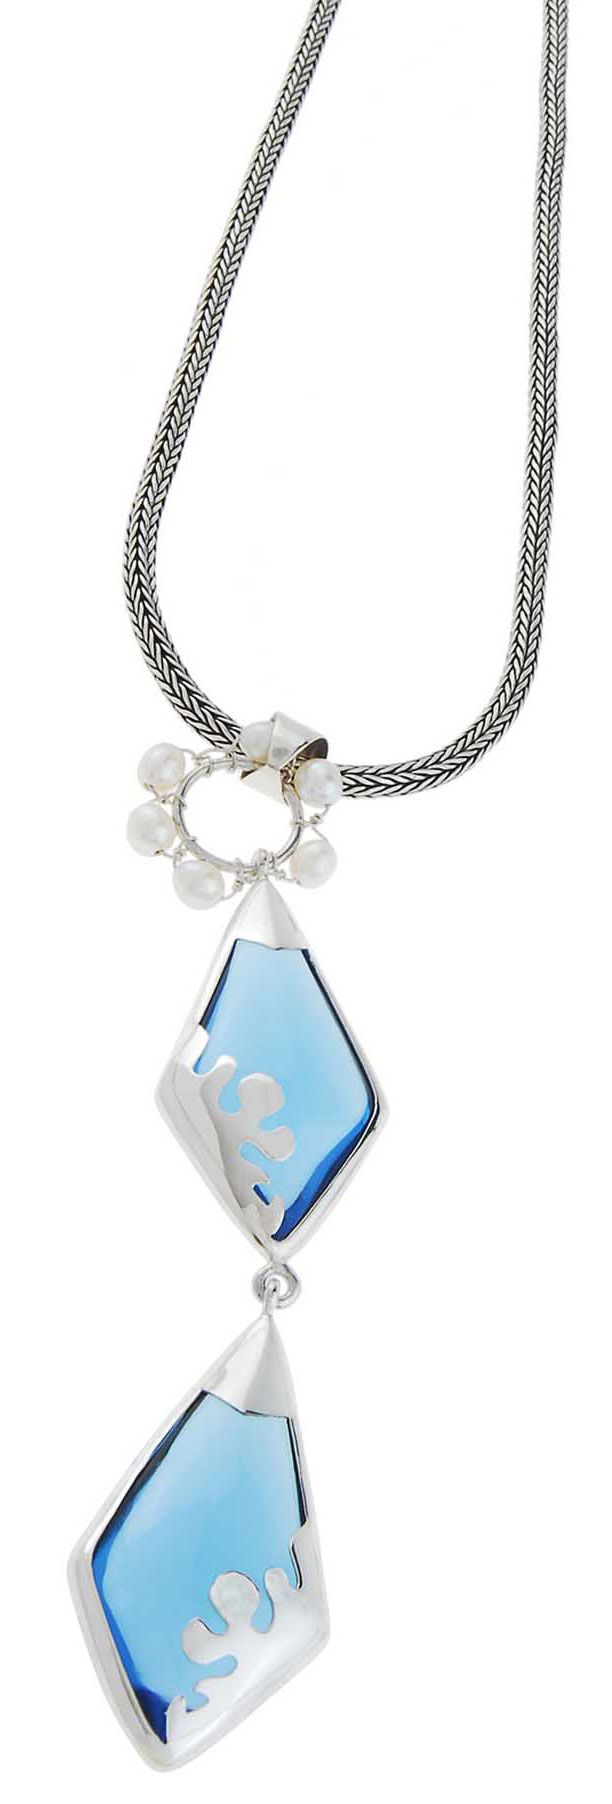 Blue Ornament (2000-1389) Freshly blue glass and freshwater pearl combined with charming ornamental silver 925. Look fresh with our design.